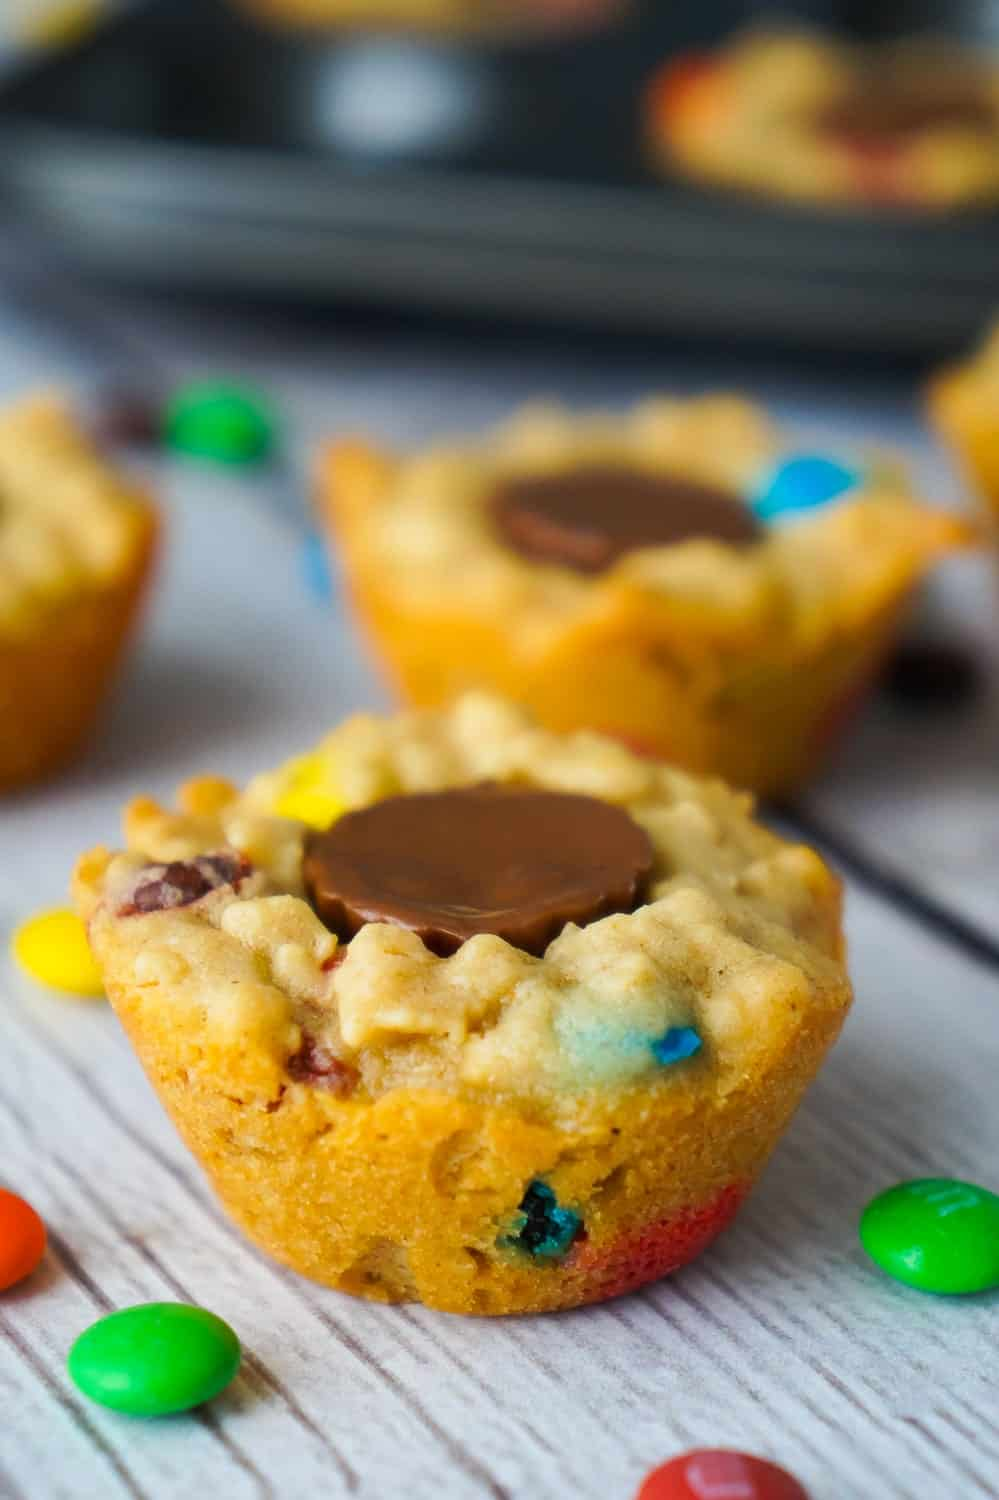 These Peanut Butter Cup Stuffed Monster Cookie Cups are a fun and easy dessert recipes. The oatmeal peanut butter cookies are loaded with mini M&Ms and each cookie cup has one mini Reese's peanut butter cup pressed into the center.